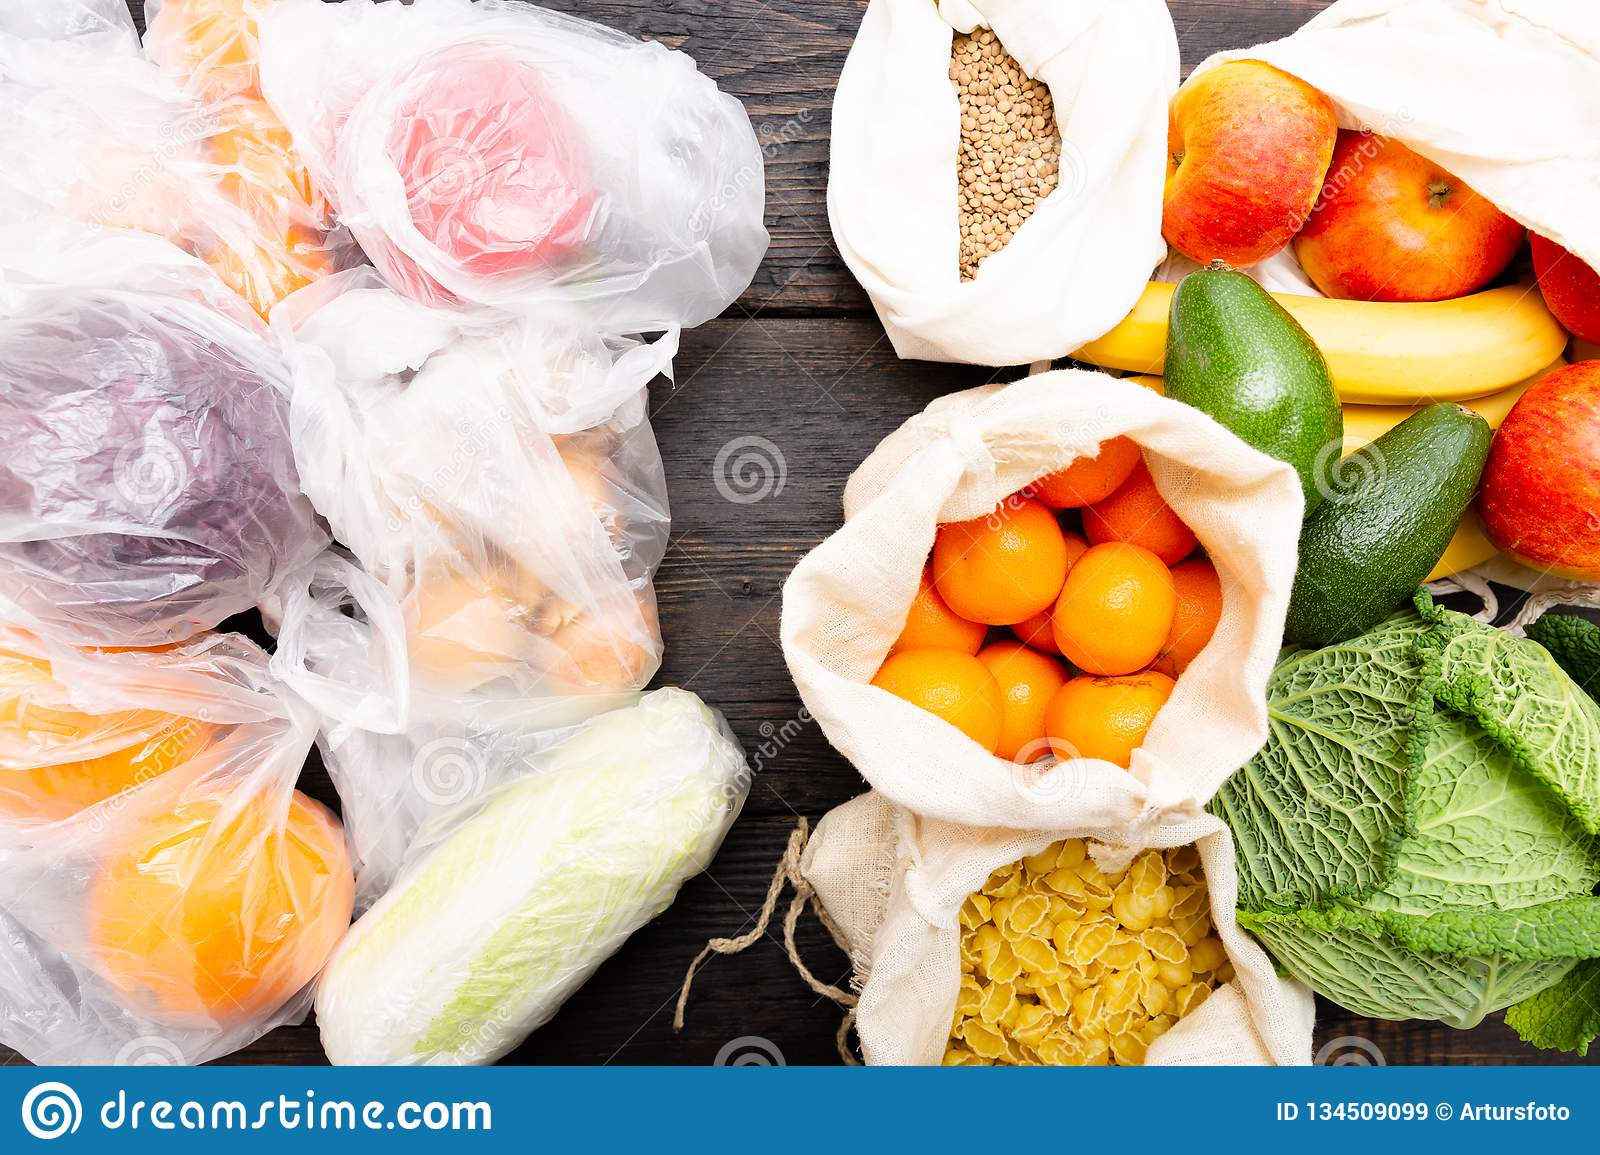 Fresh vegetables and fruits in eco cotton bags against vegetables in plastic bags. Zero waste concept - Use plastic bags or multi-